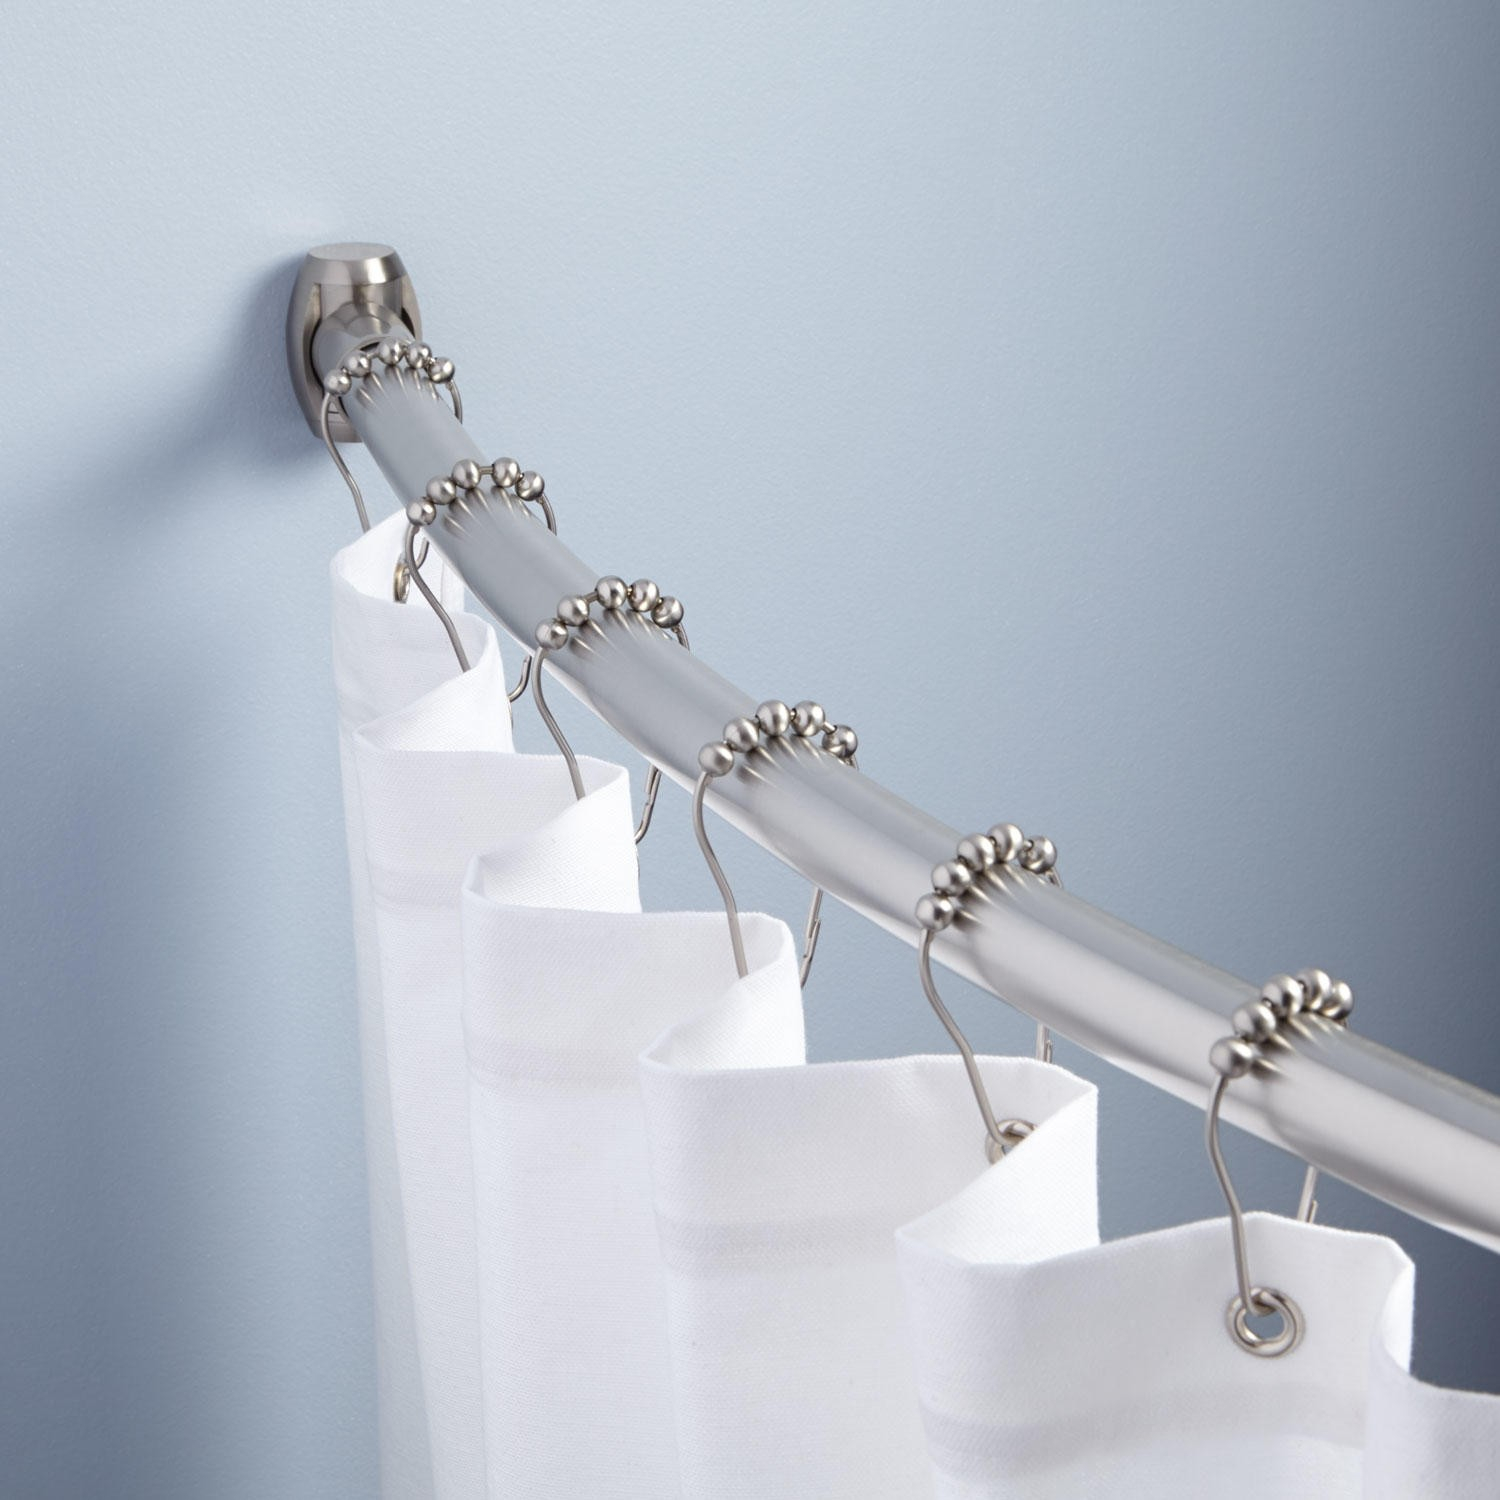 One Piece Curved Shower Curtain Rod • Shower Curtains Ideas